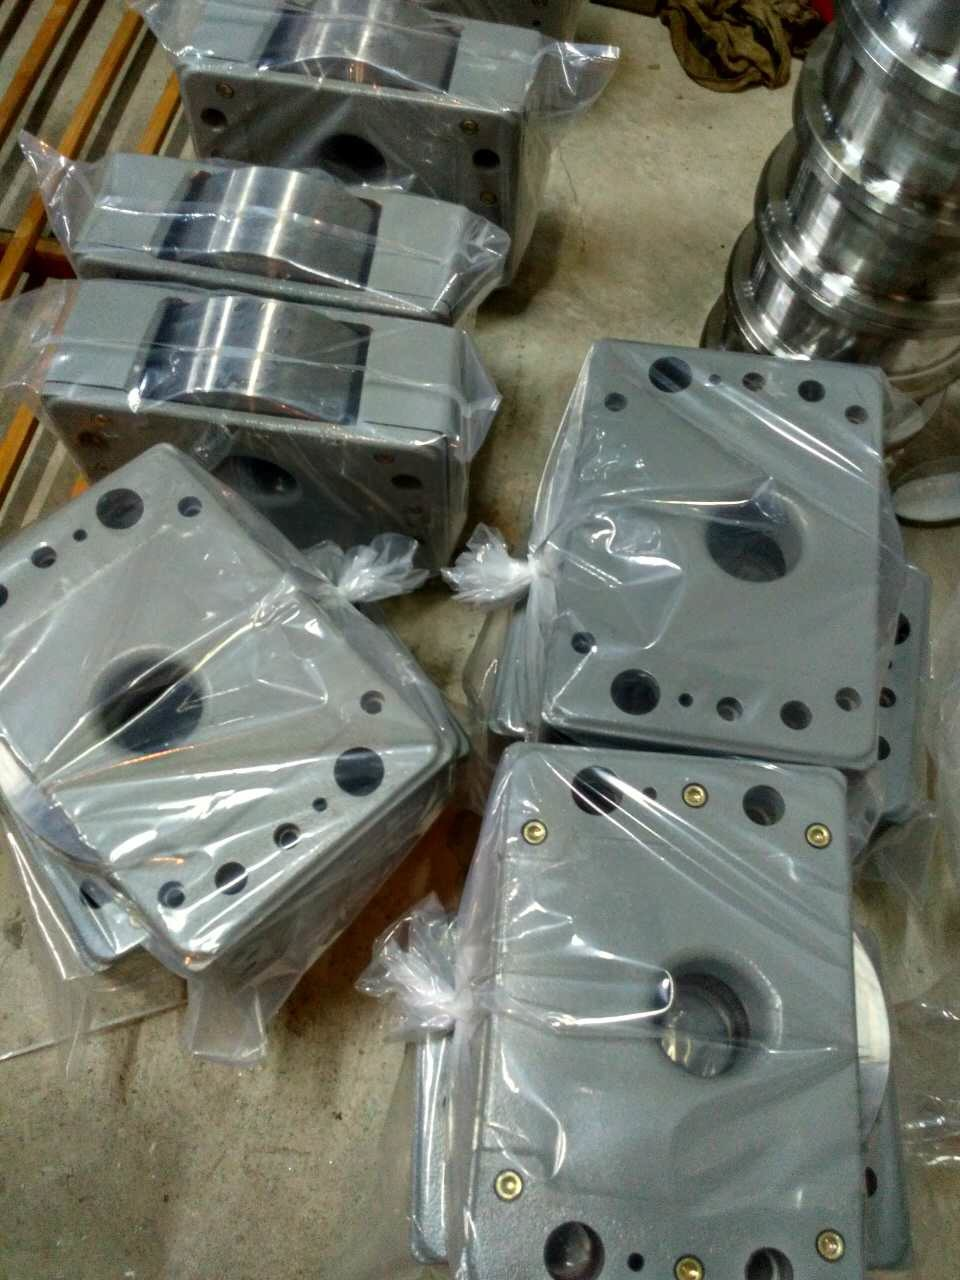 Drs 125mm Wheel Block for End Truck (DRS-125mm)